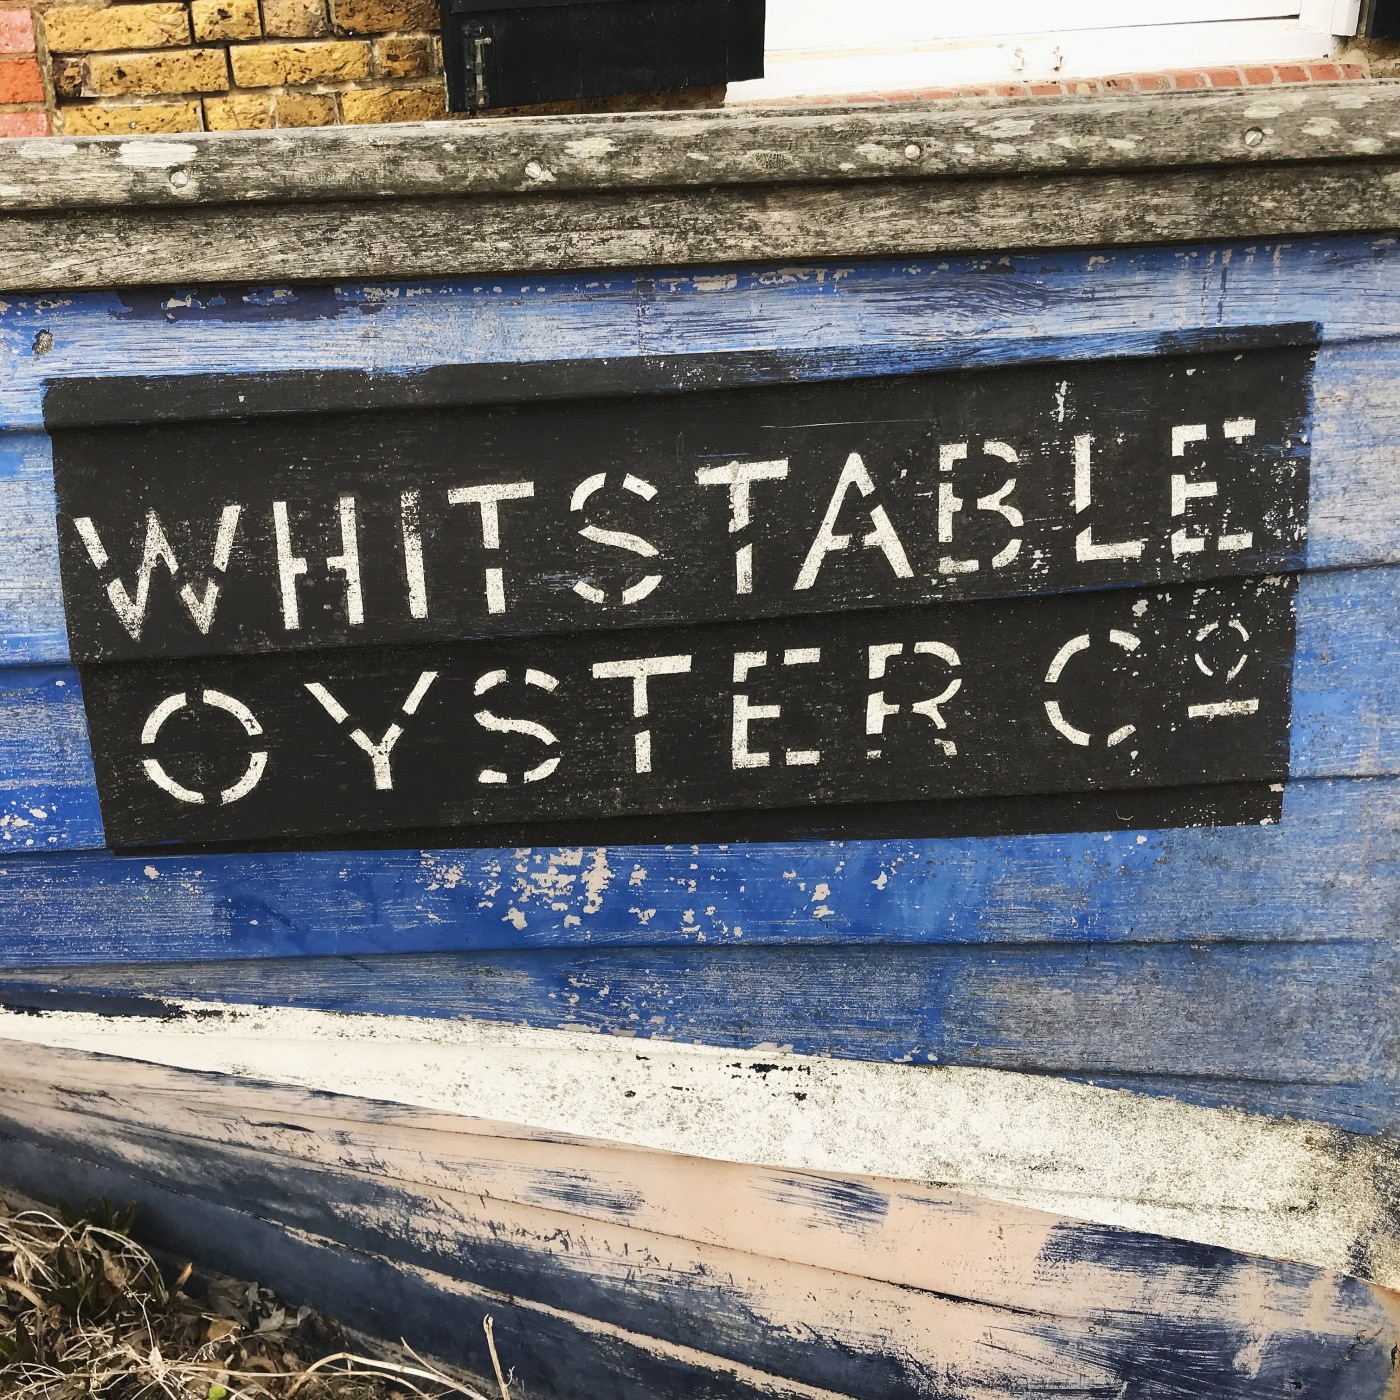 Whitstable harbour and beachfront